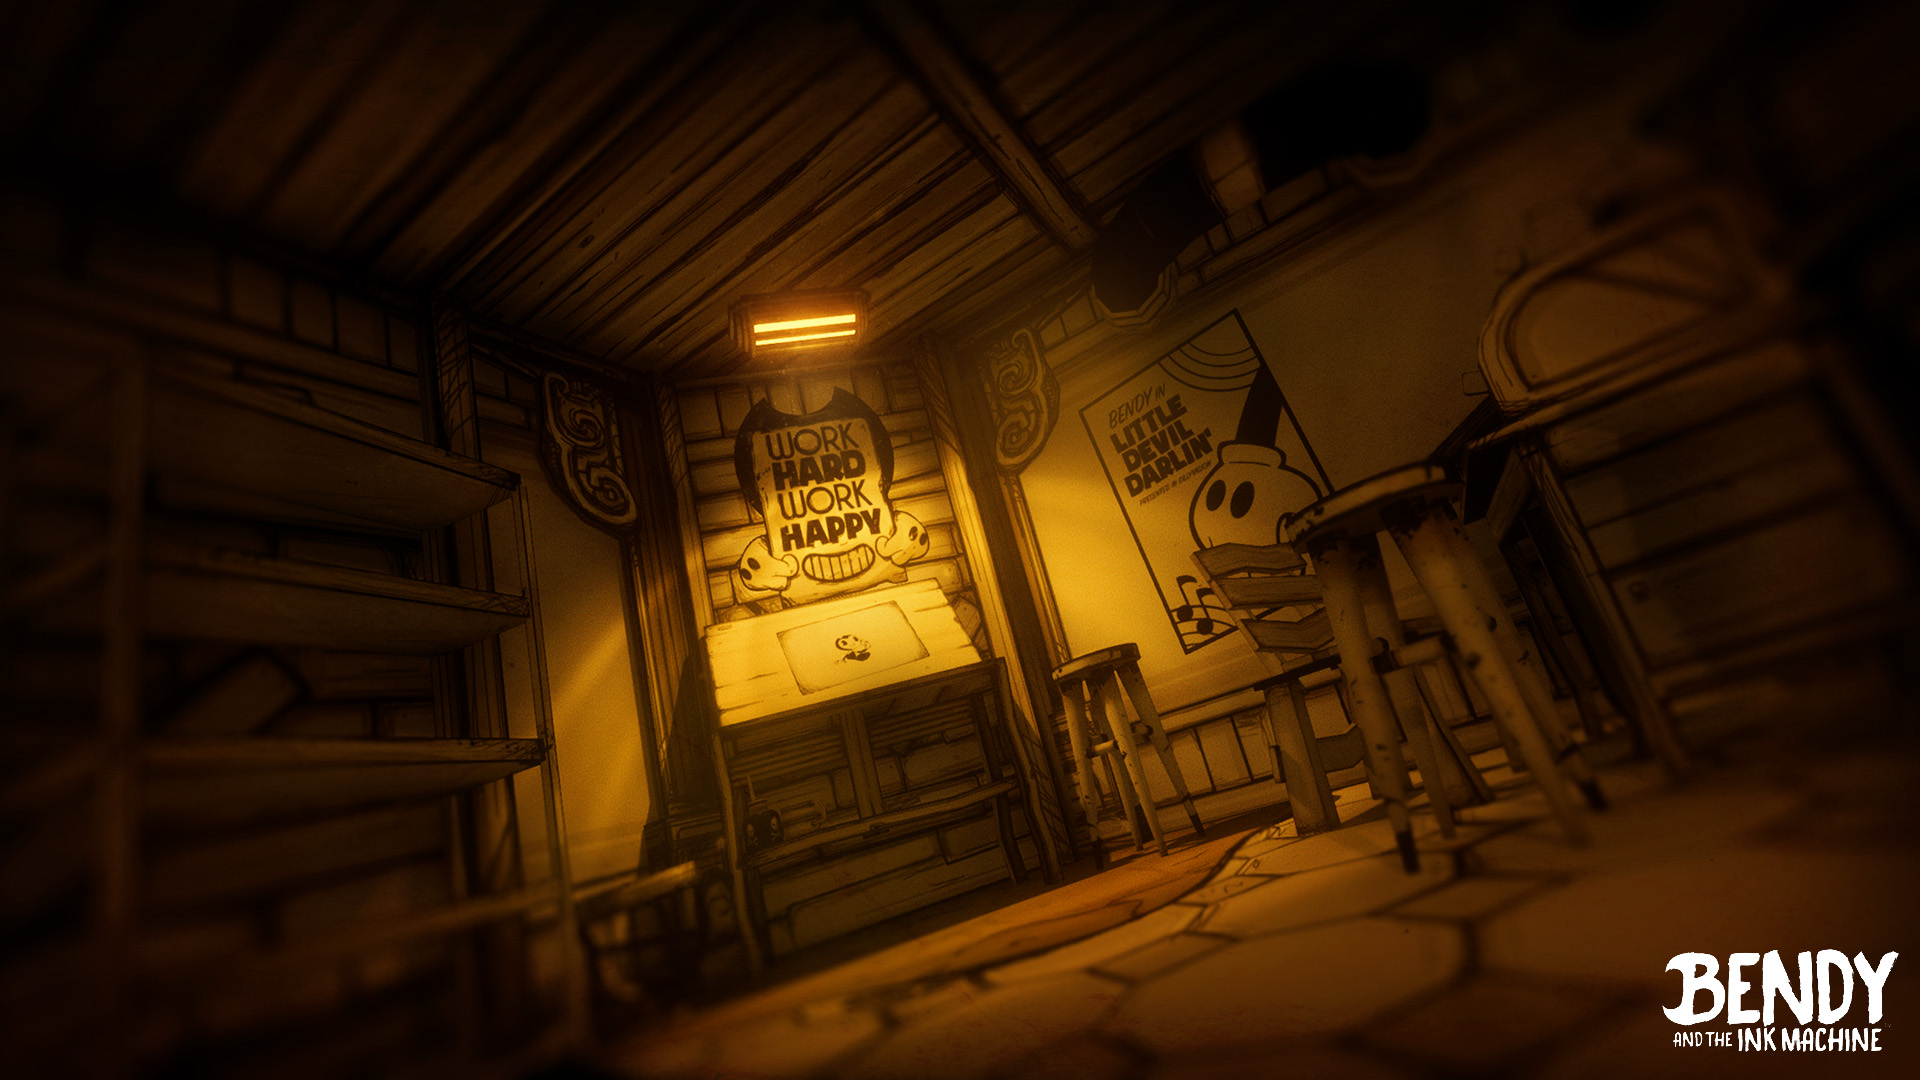 bendy and the ink machine chapter 4 free download